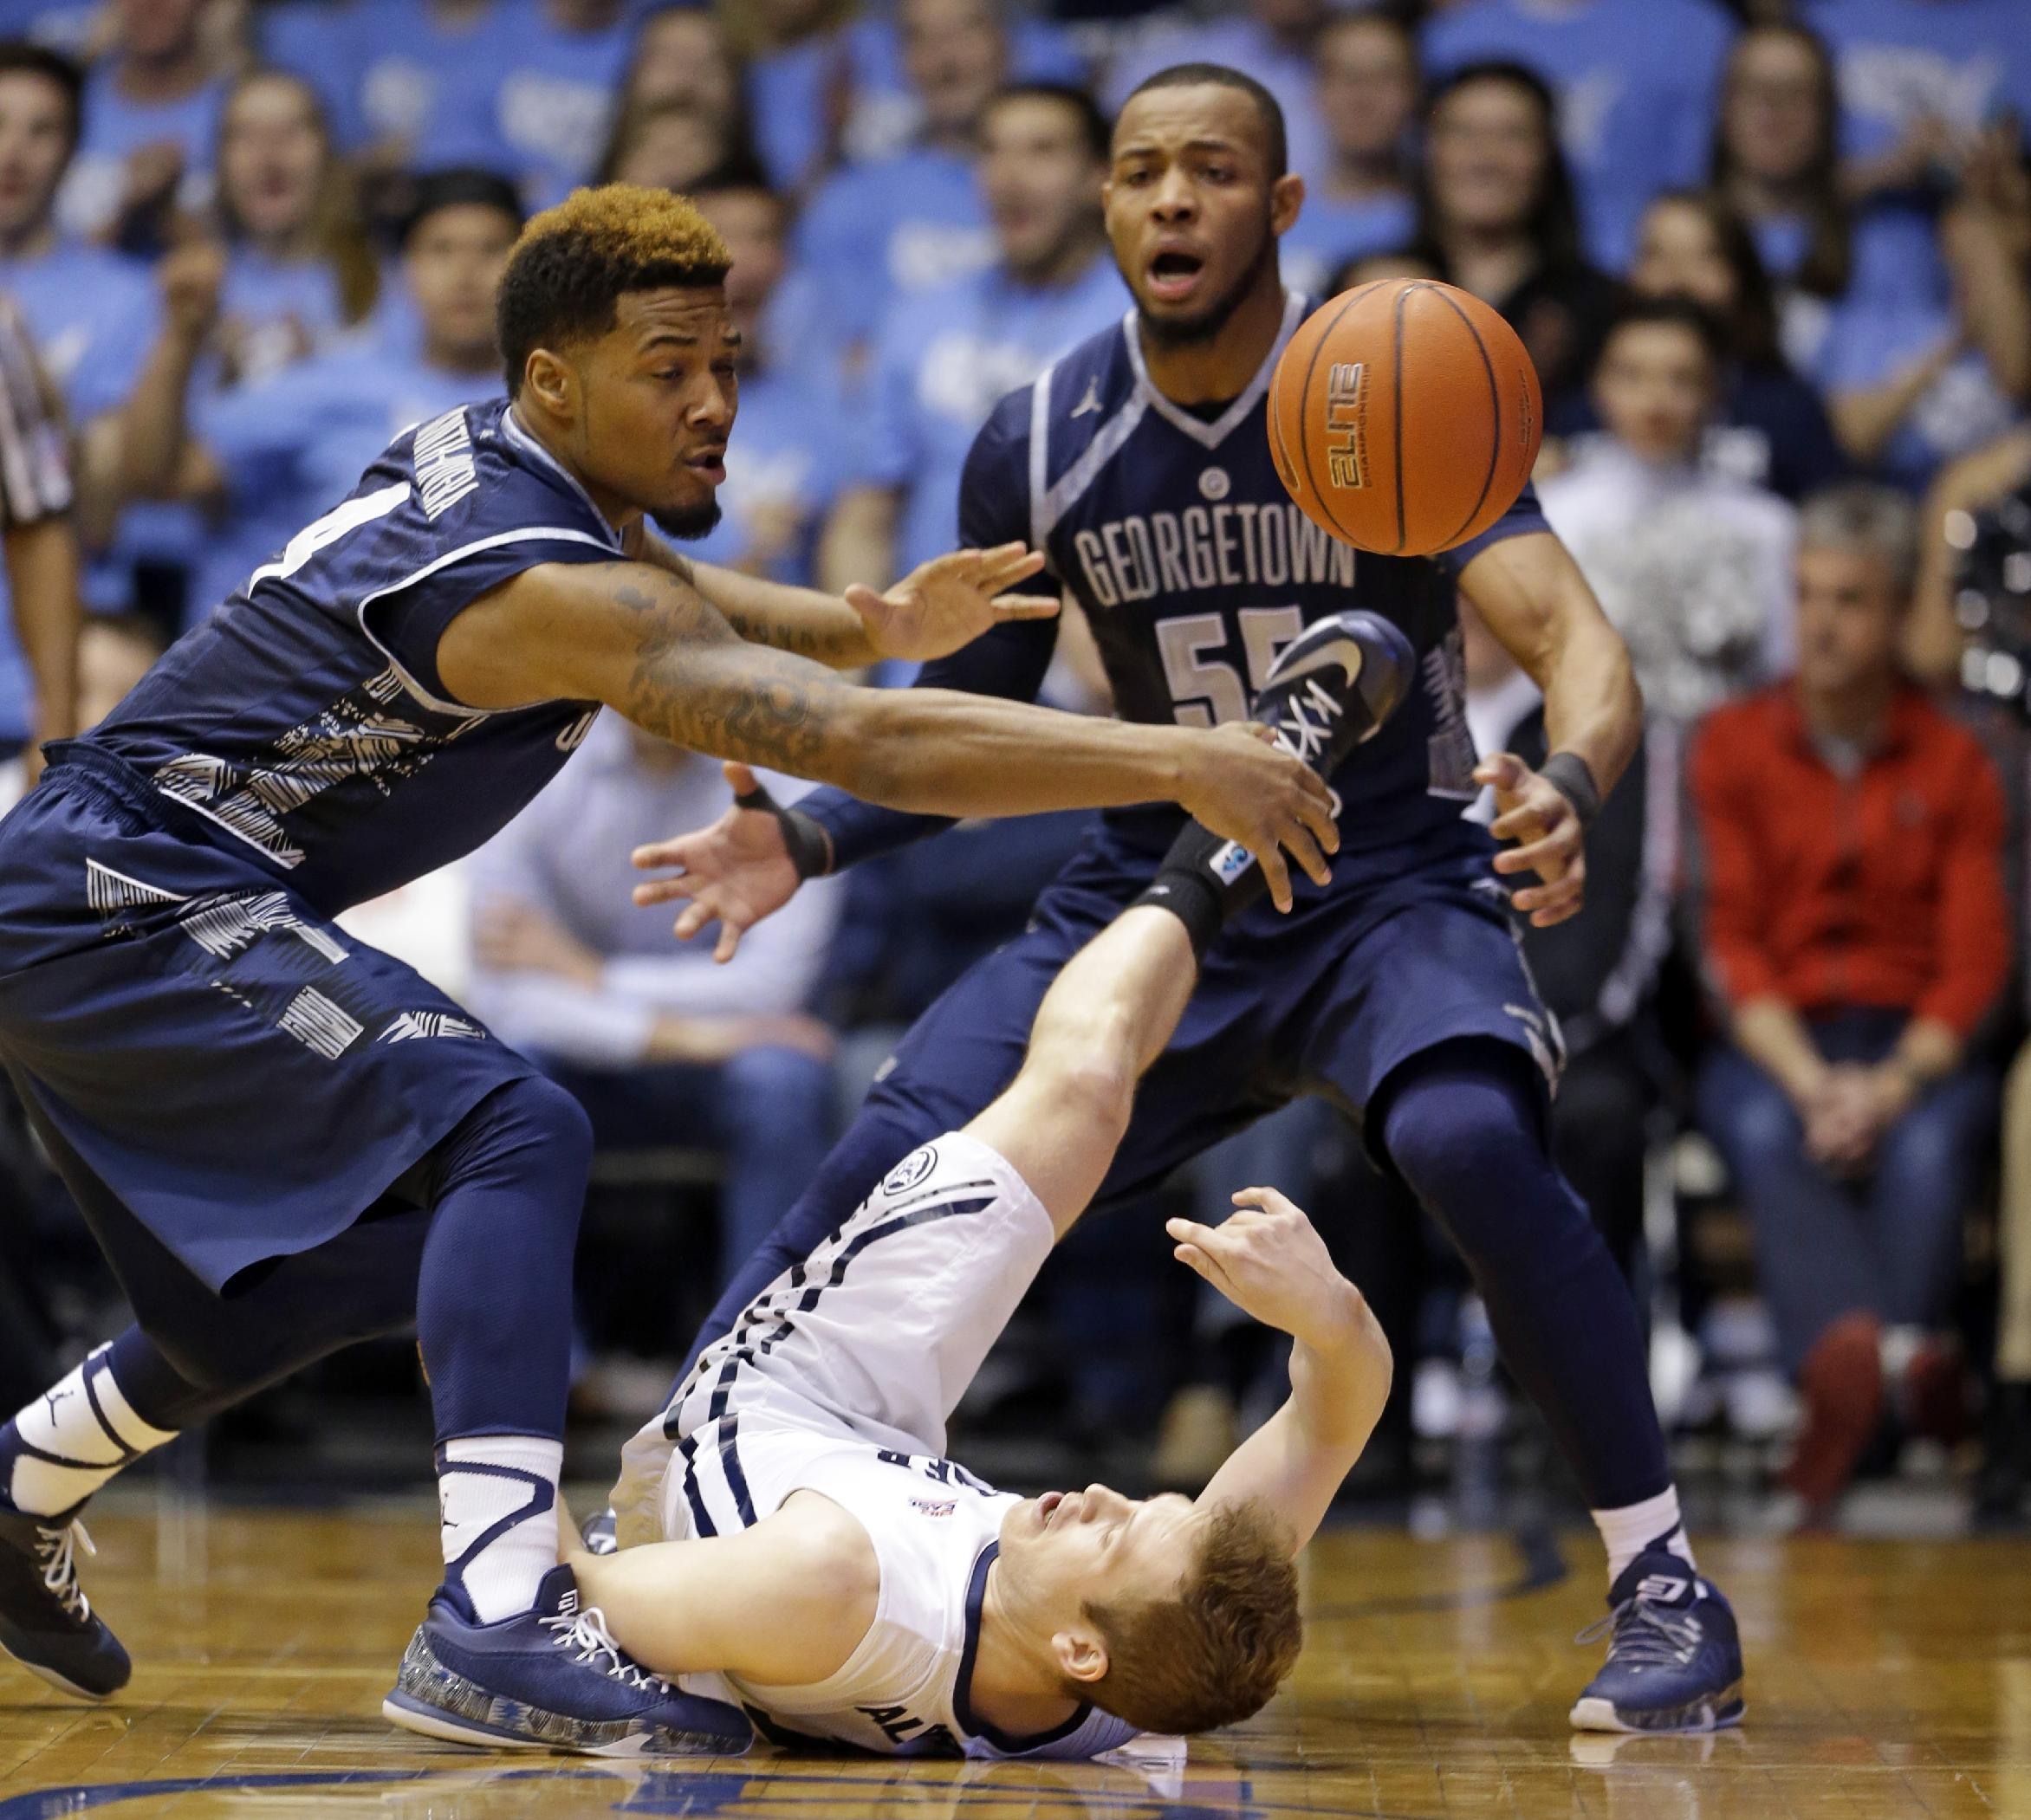 Georgetown holds off comeback to upset No. 21 Butler 60-54